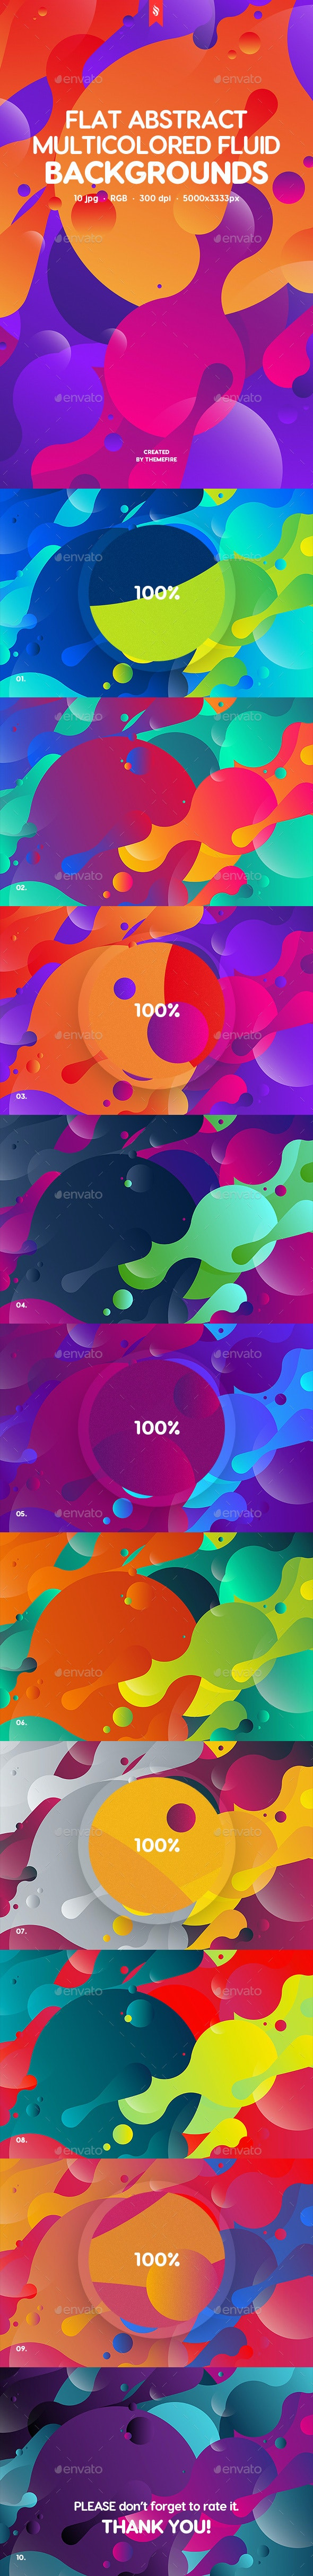 Abstract Flat Multicolored Fluid Backgrounds - Abstract Backgrounds